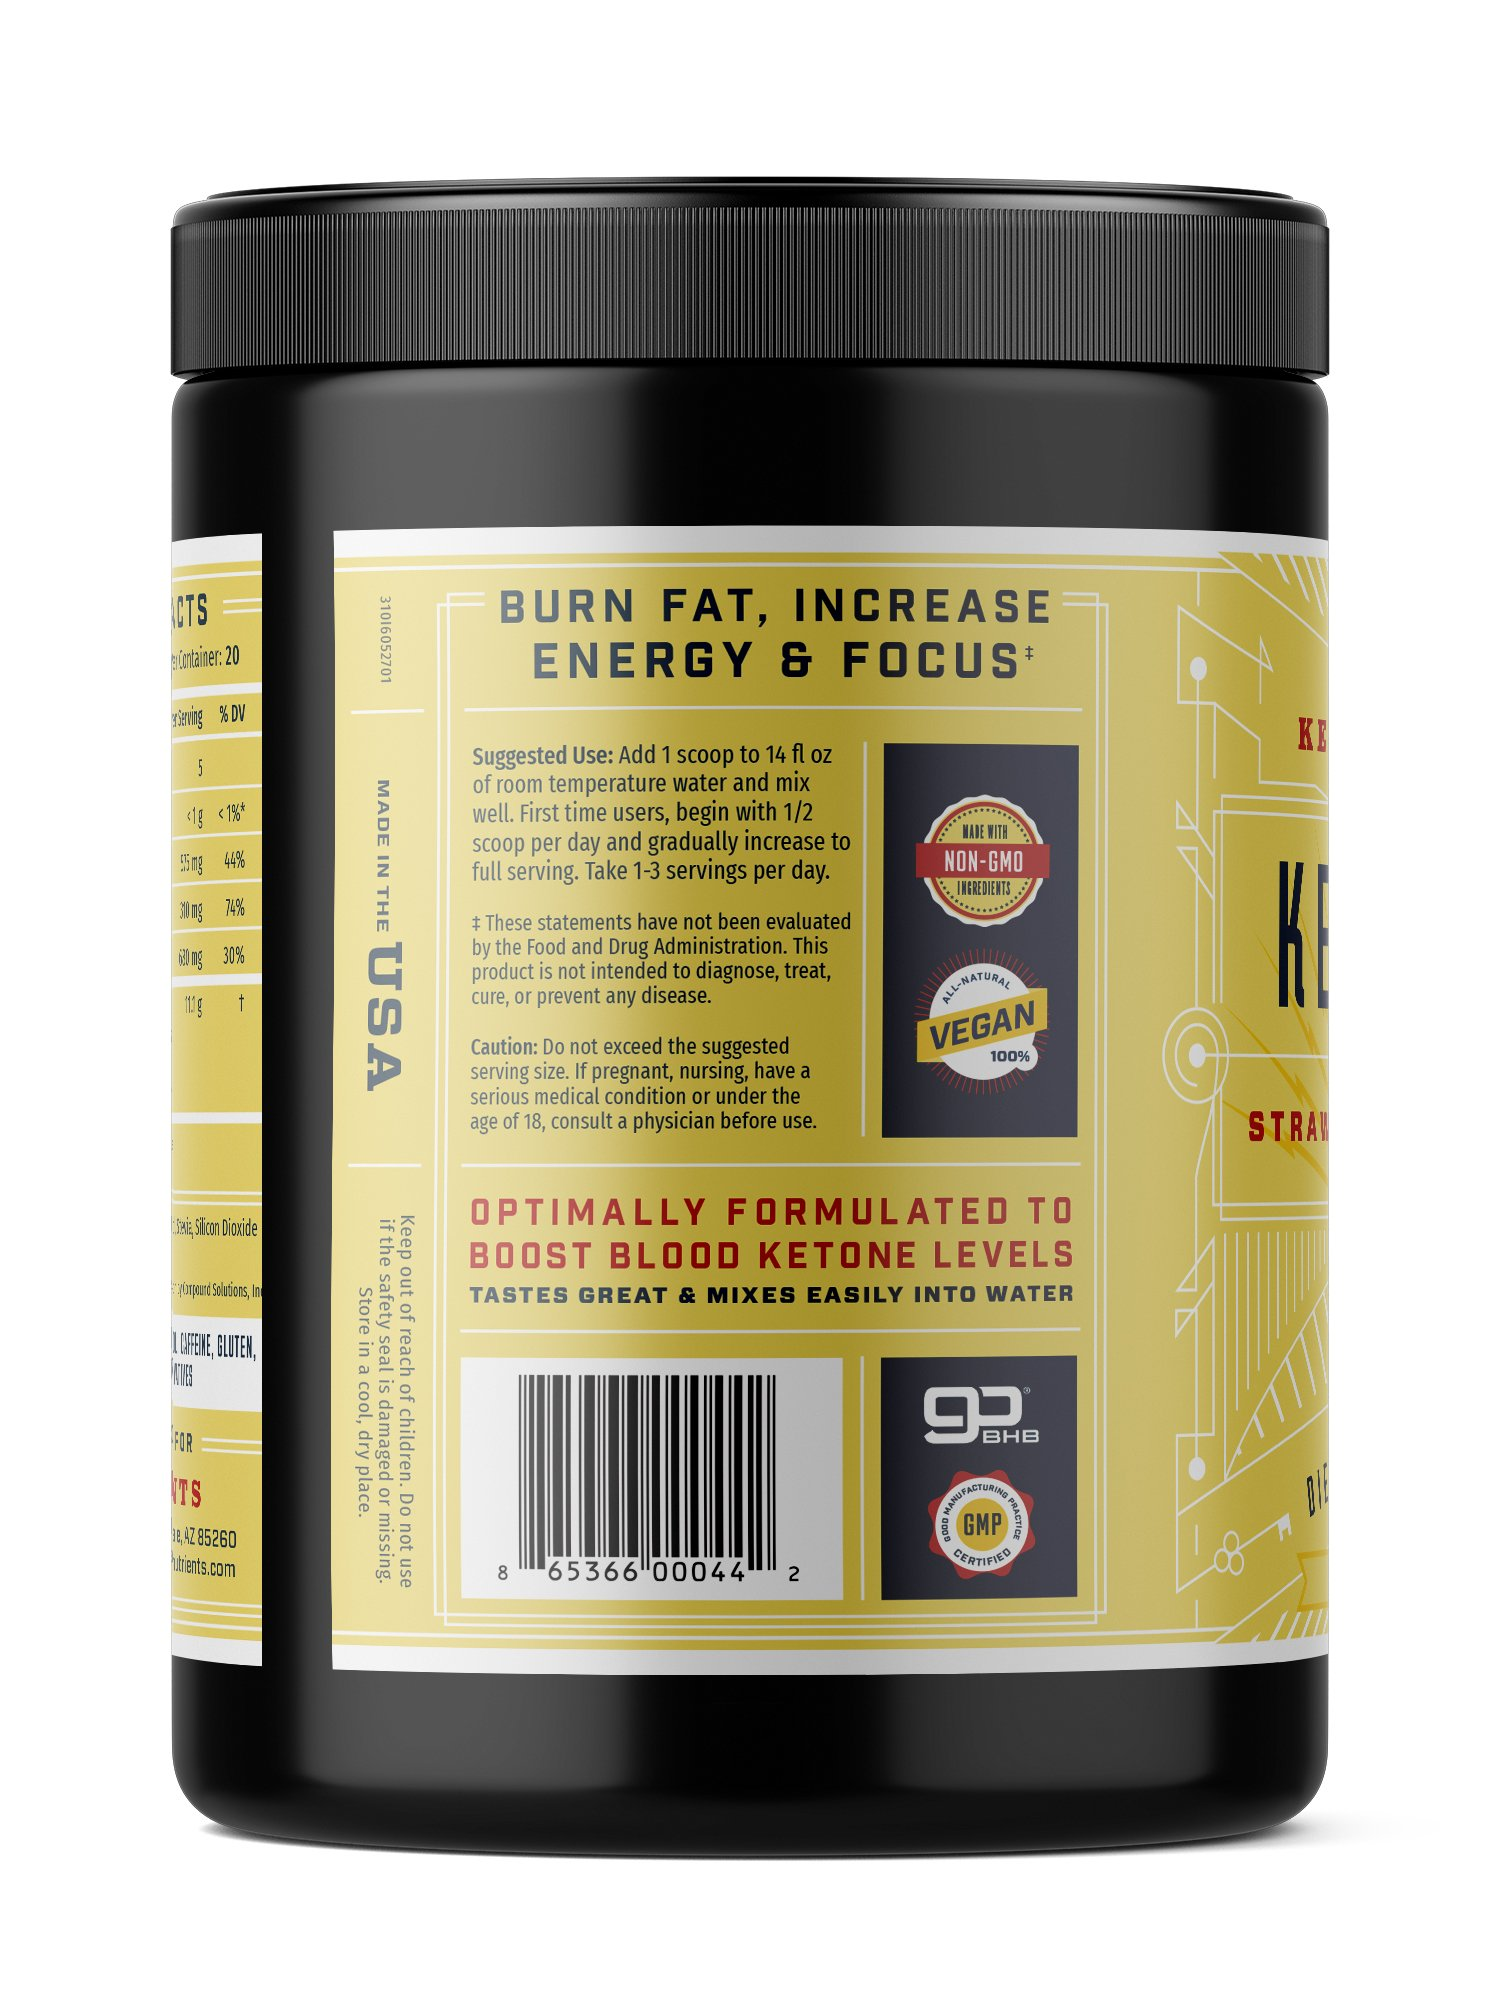 Exogenous Ketone Supplement, KEY KETO: Patented BHB Salts (Beta-Hydroxybutyrate) - Formulated for Ketosis, to Burn Fat, Increase Energy and Focus, Supports a Keto Diet. Strawberry Lemonade (278g) (20) by Key Nutrients (Image #3)